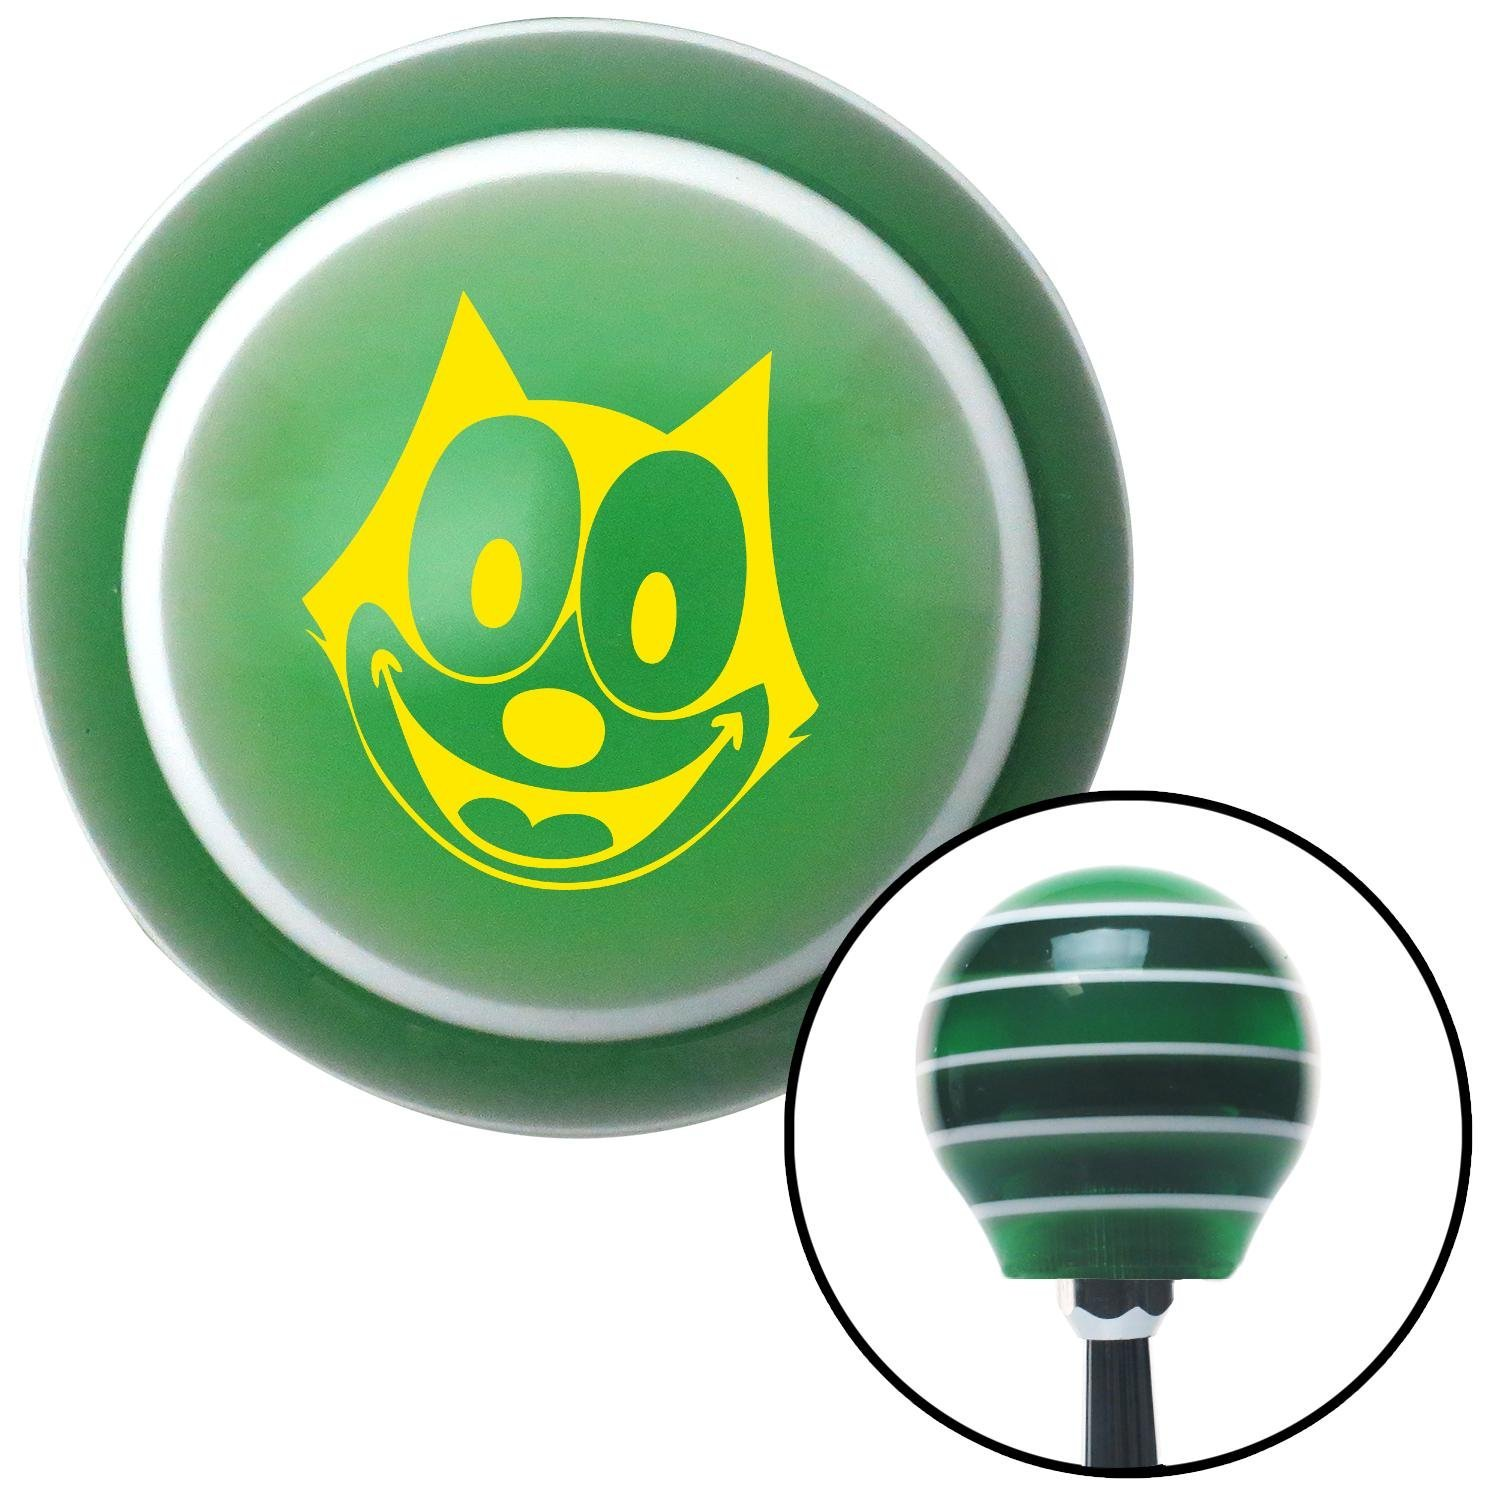 American Shifter 125973 Green Stripe Shift Knob with M16 x 1.5 Insert Yellow Felix The Cat Smiling